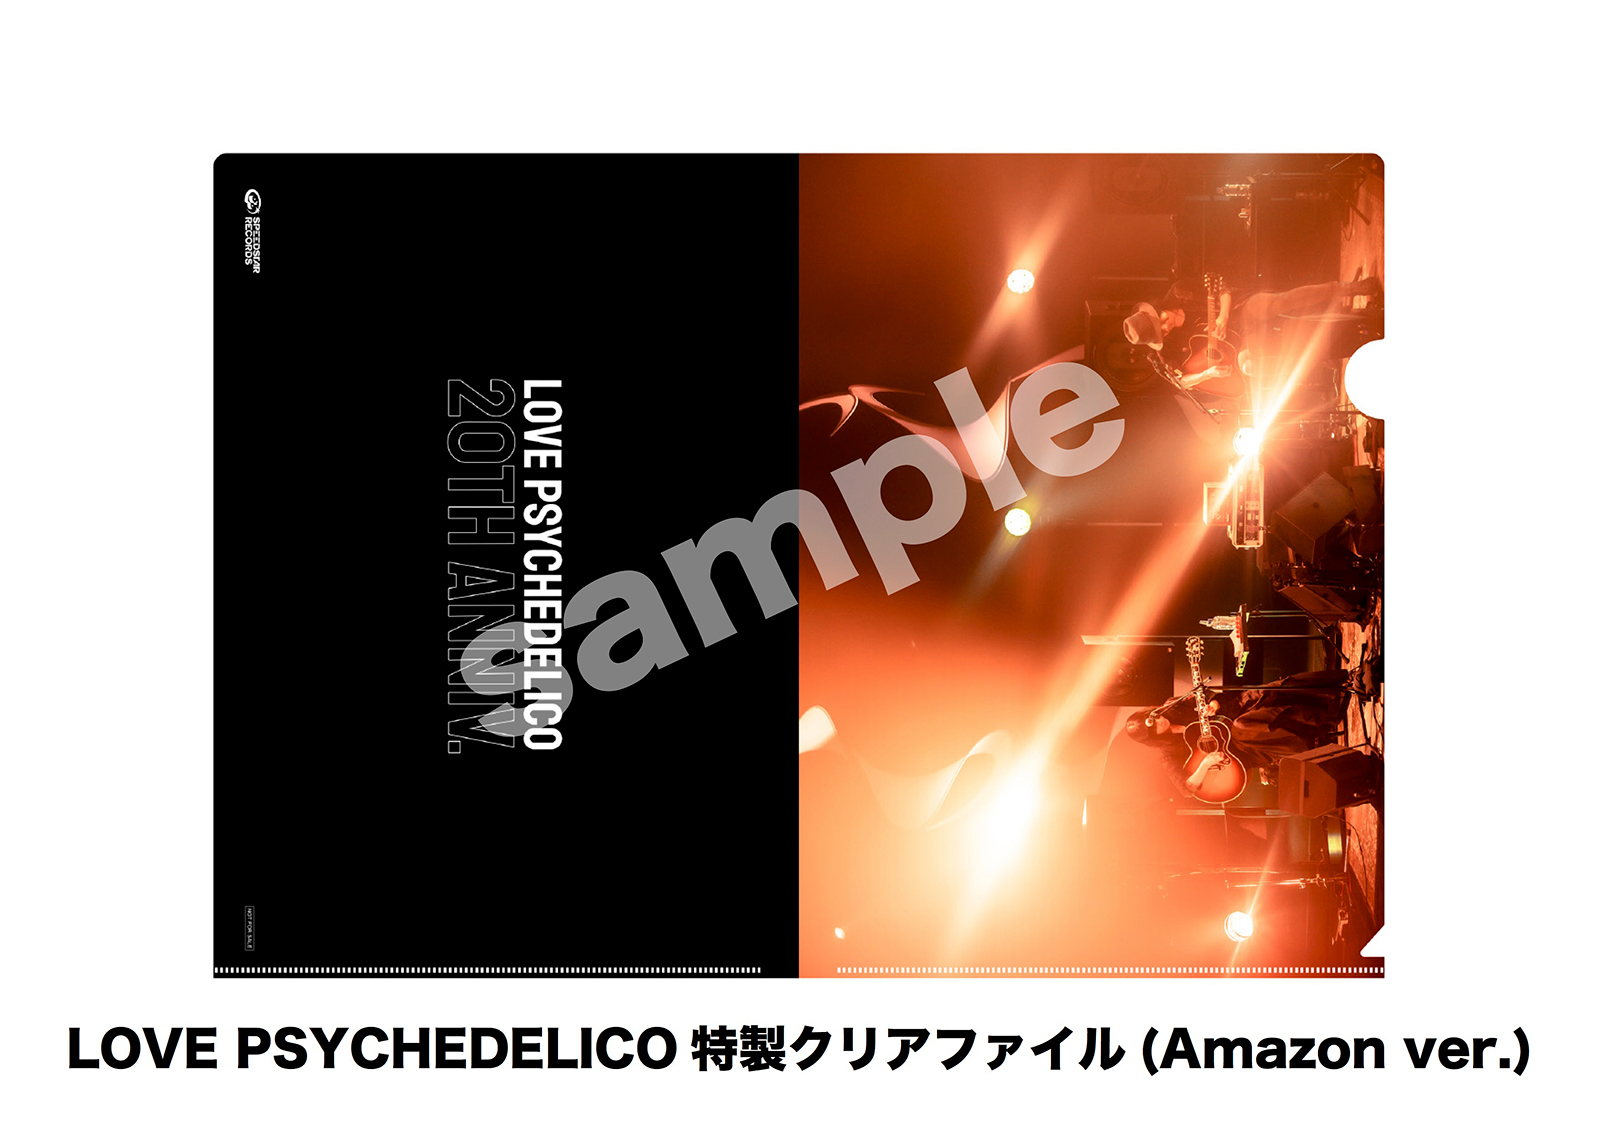 LOVE PSYCHEDELICO特製クリアファイル(Amazon ver.)